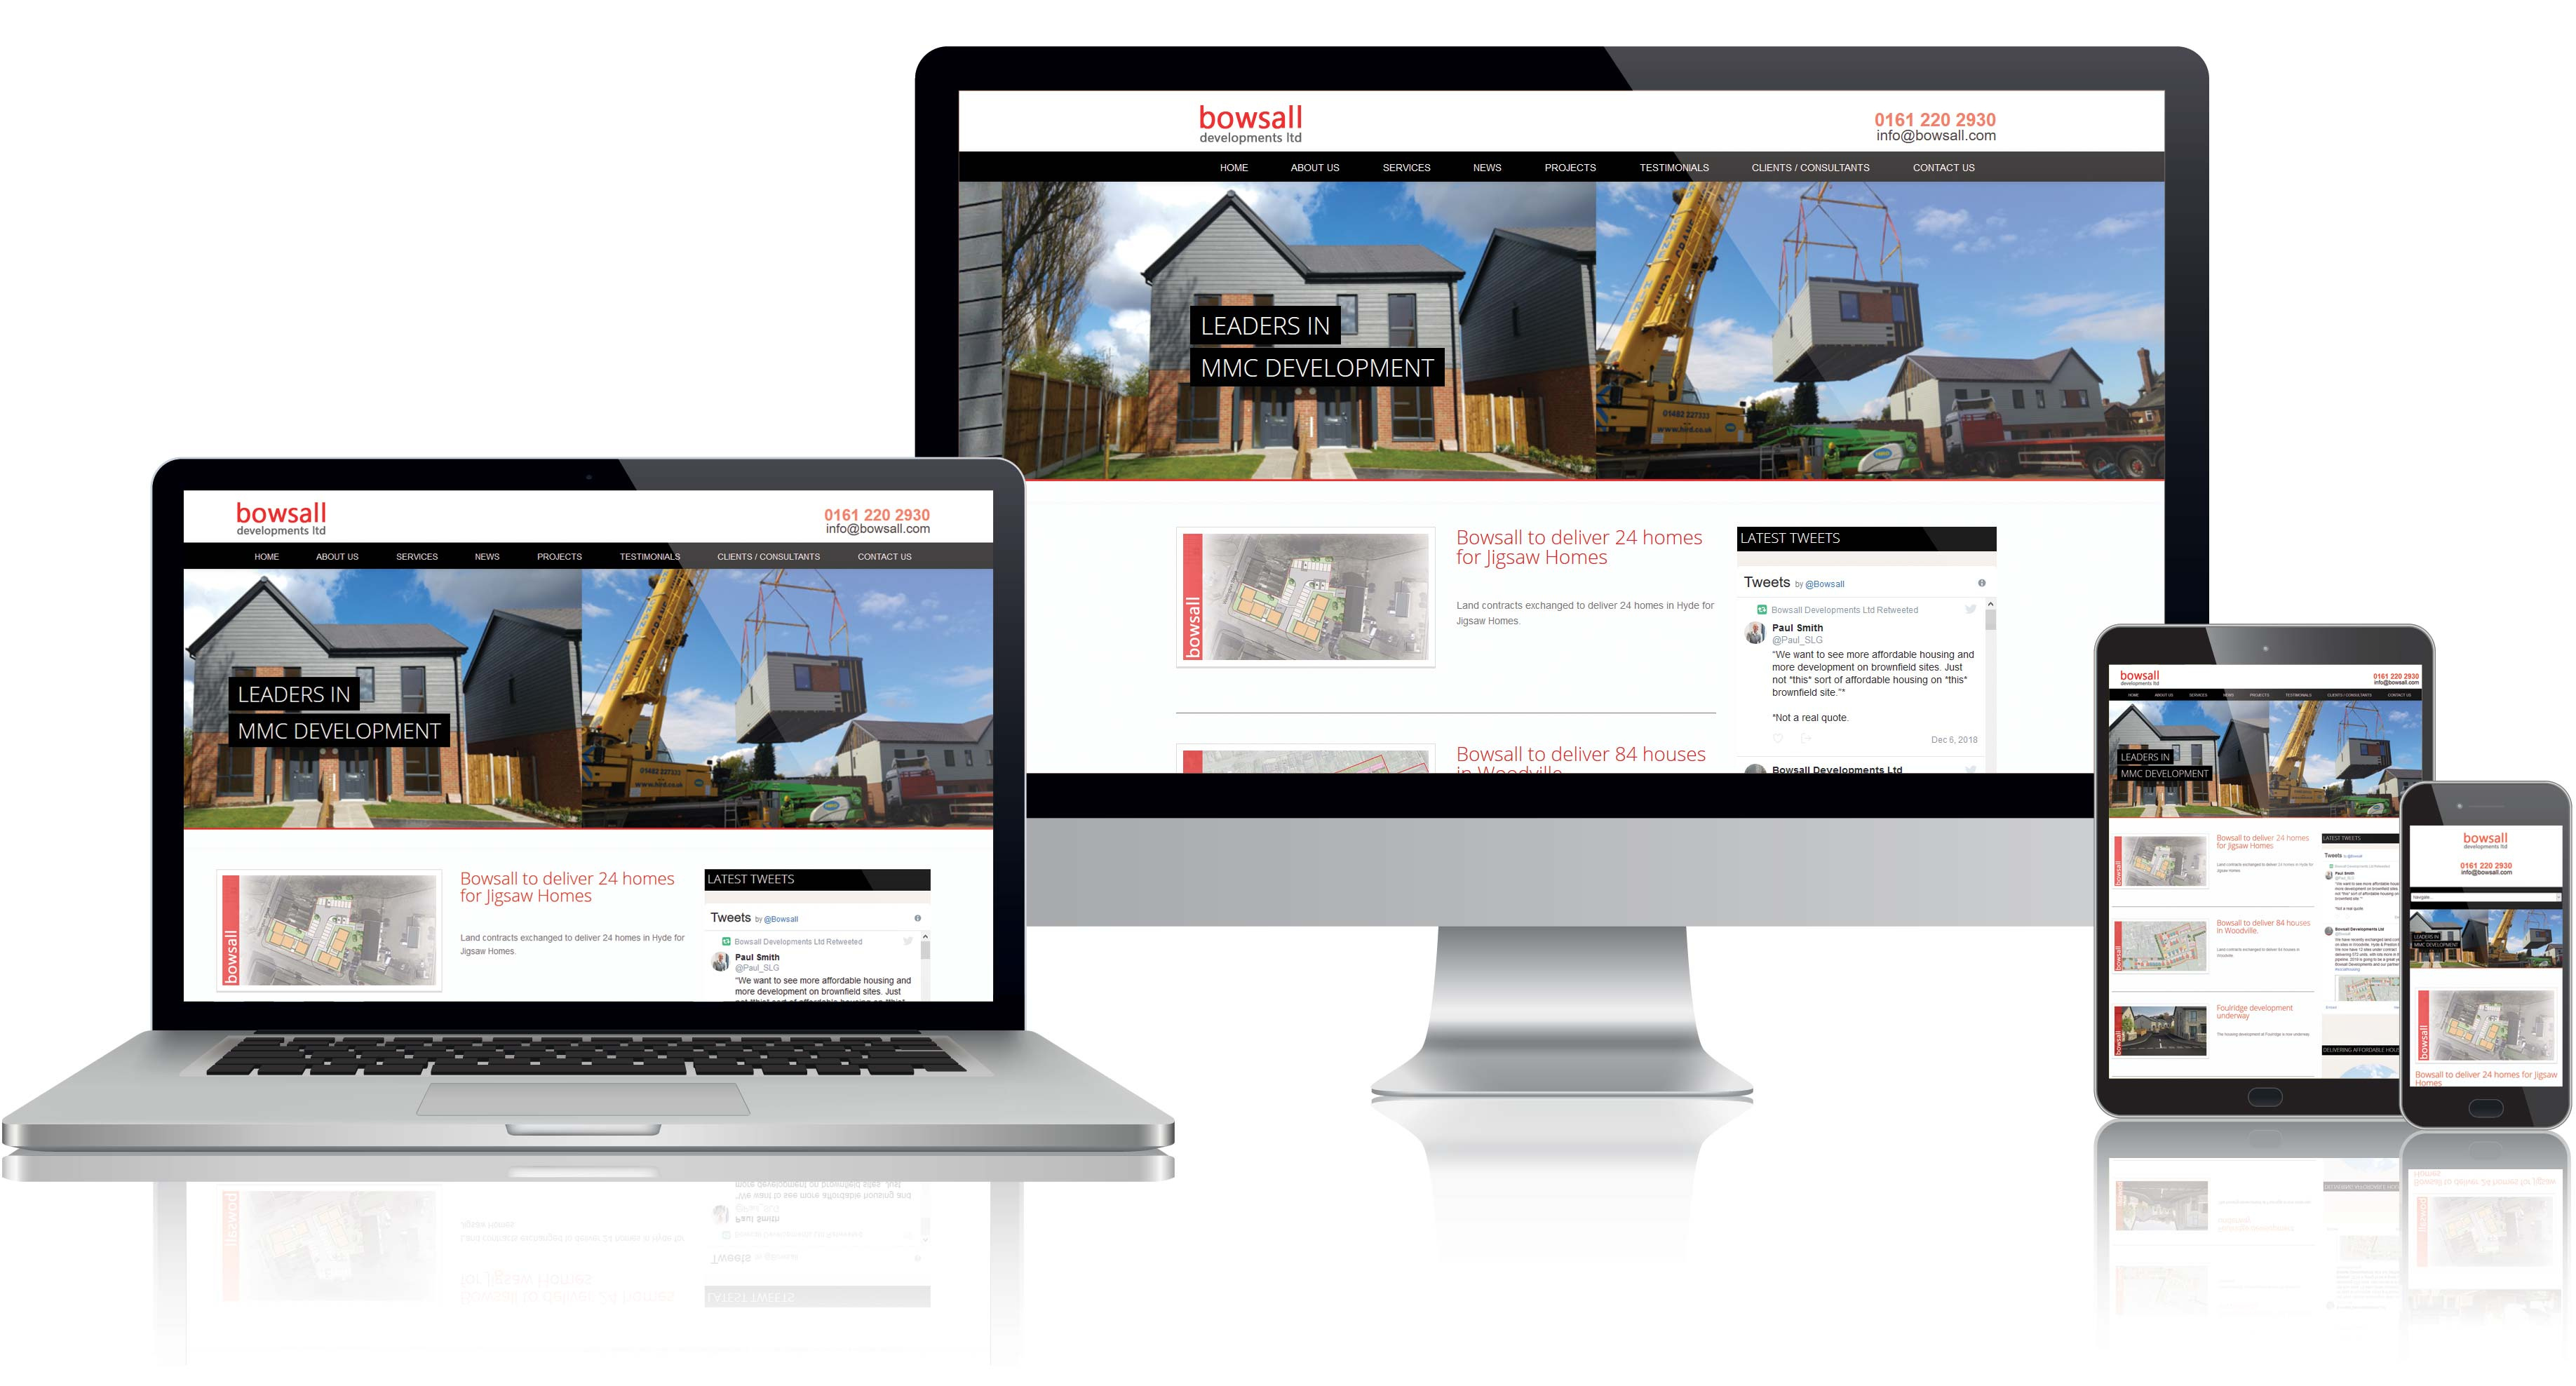 Website Design for bowsall developments